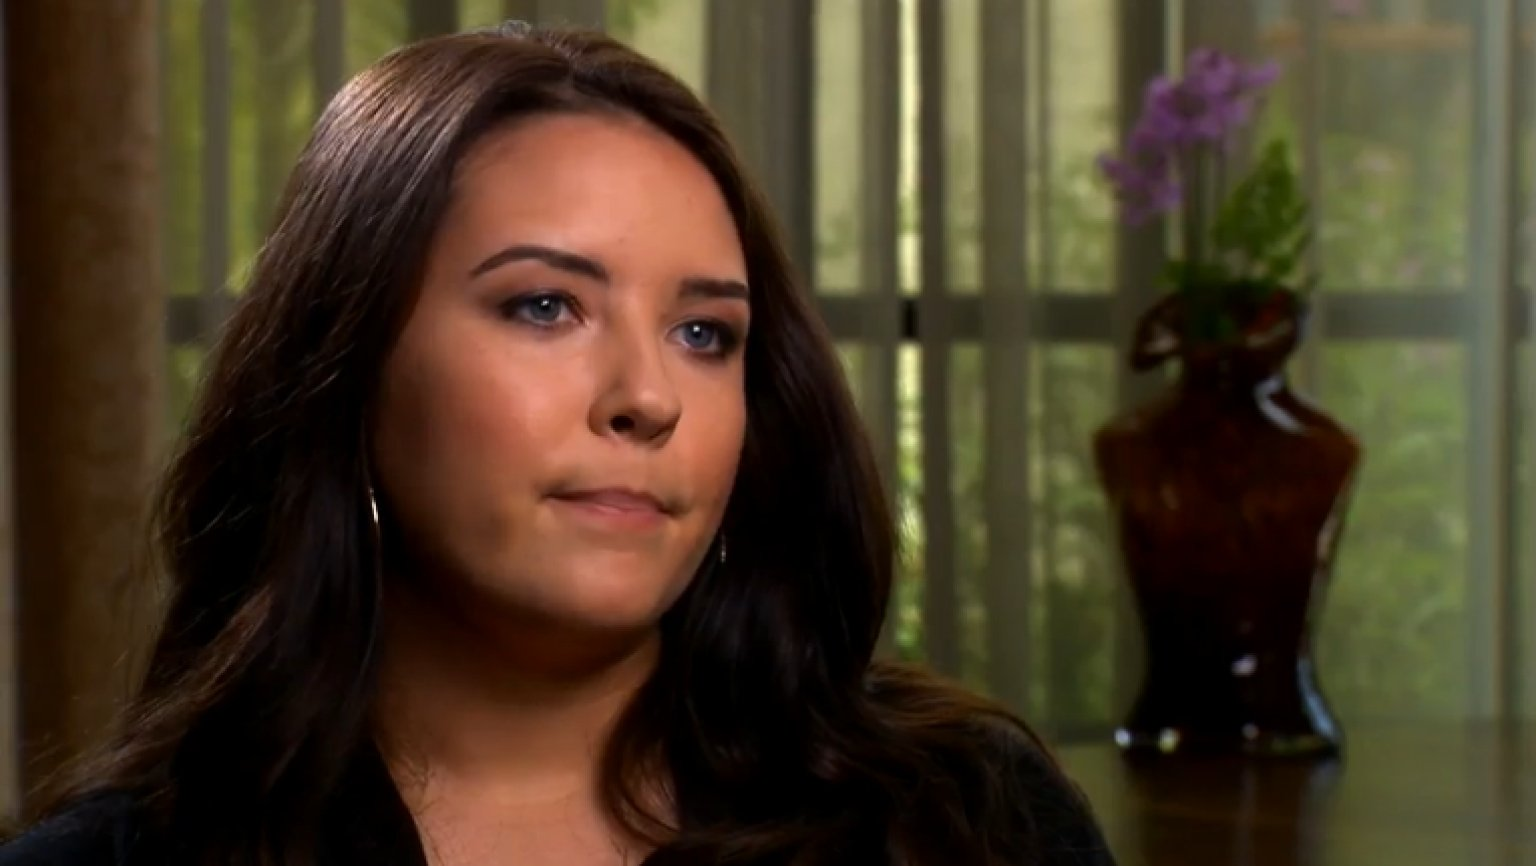 Alexis Neiers Jailed in Celeb Bling Ring Case - The Hollywood Gossip